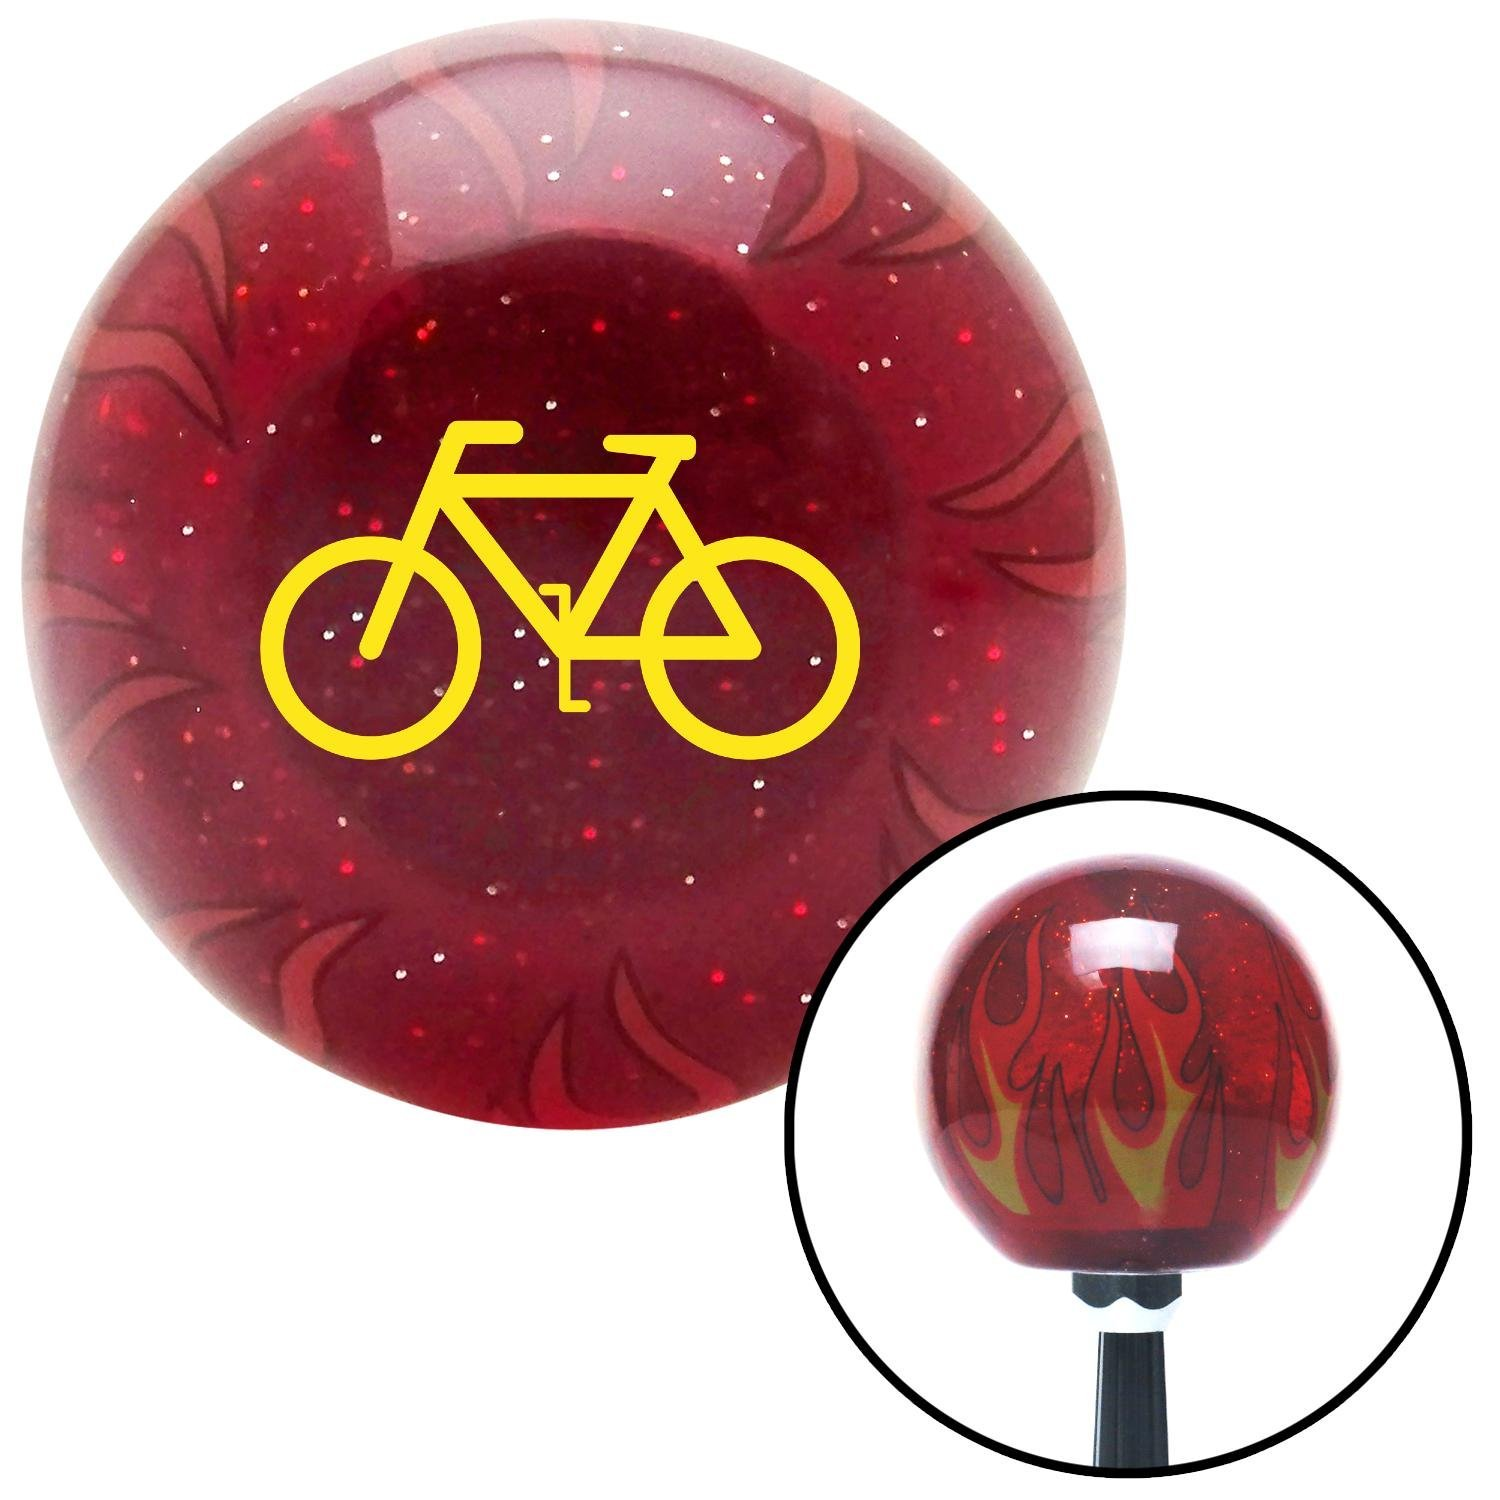 American Shifter 240178 Red Flame Metal Flake Shift Knob with M16 x 1.5 Insert Yellow Bicycle